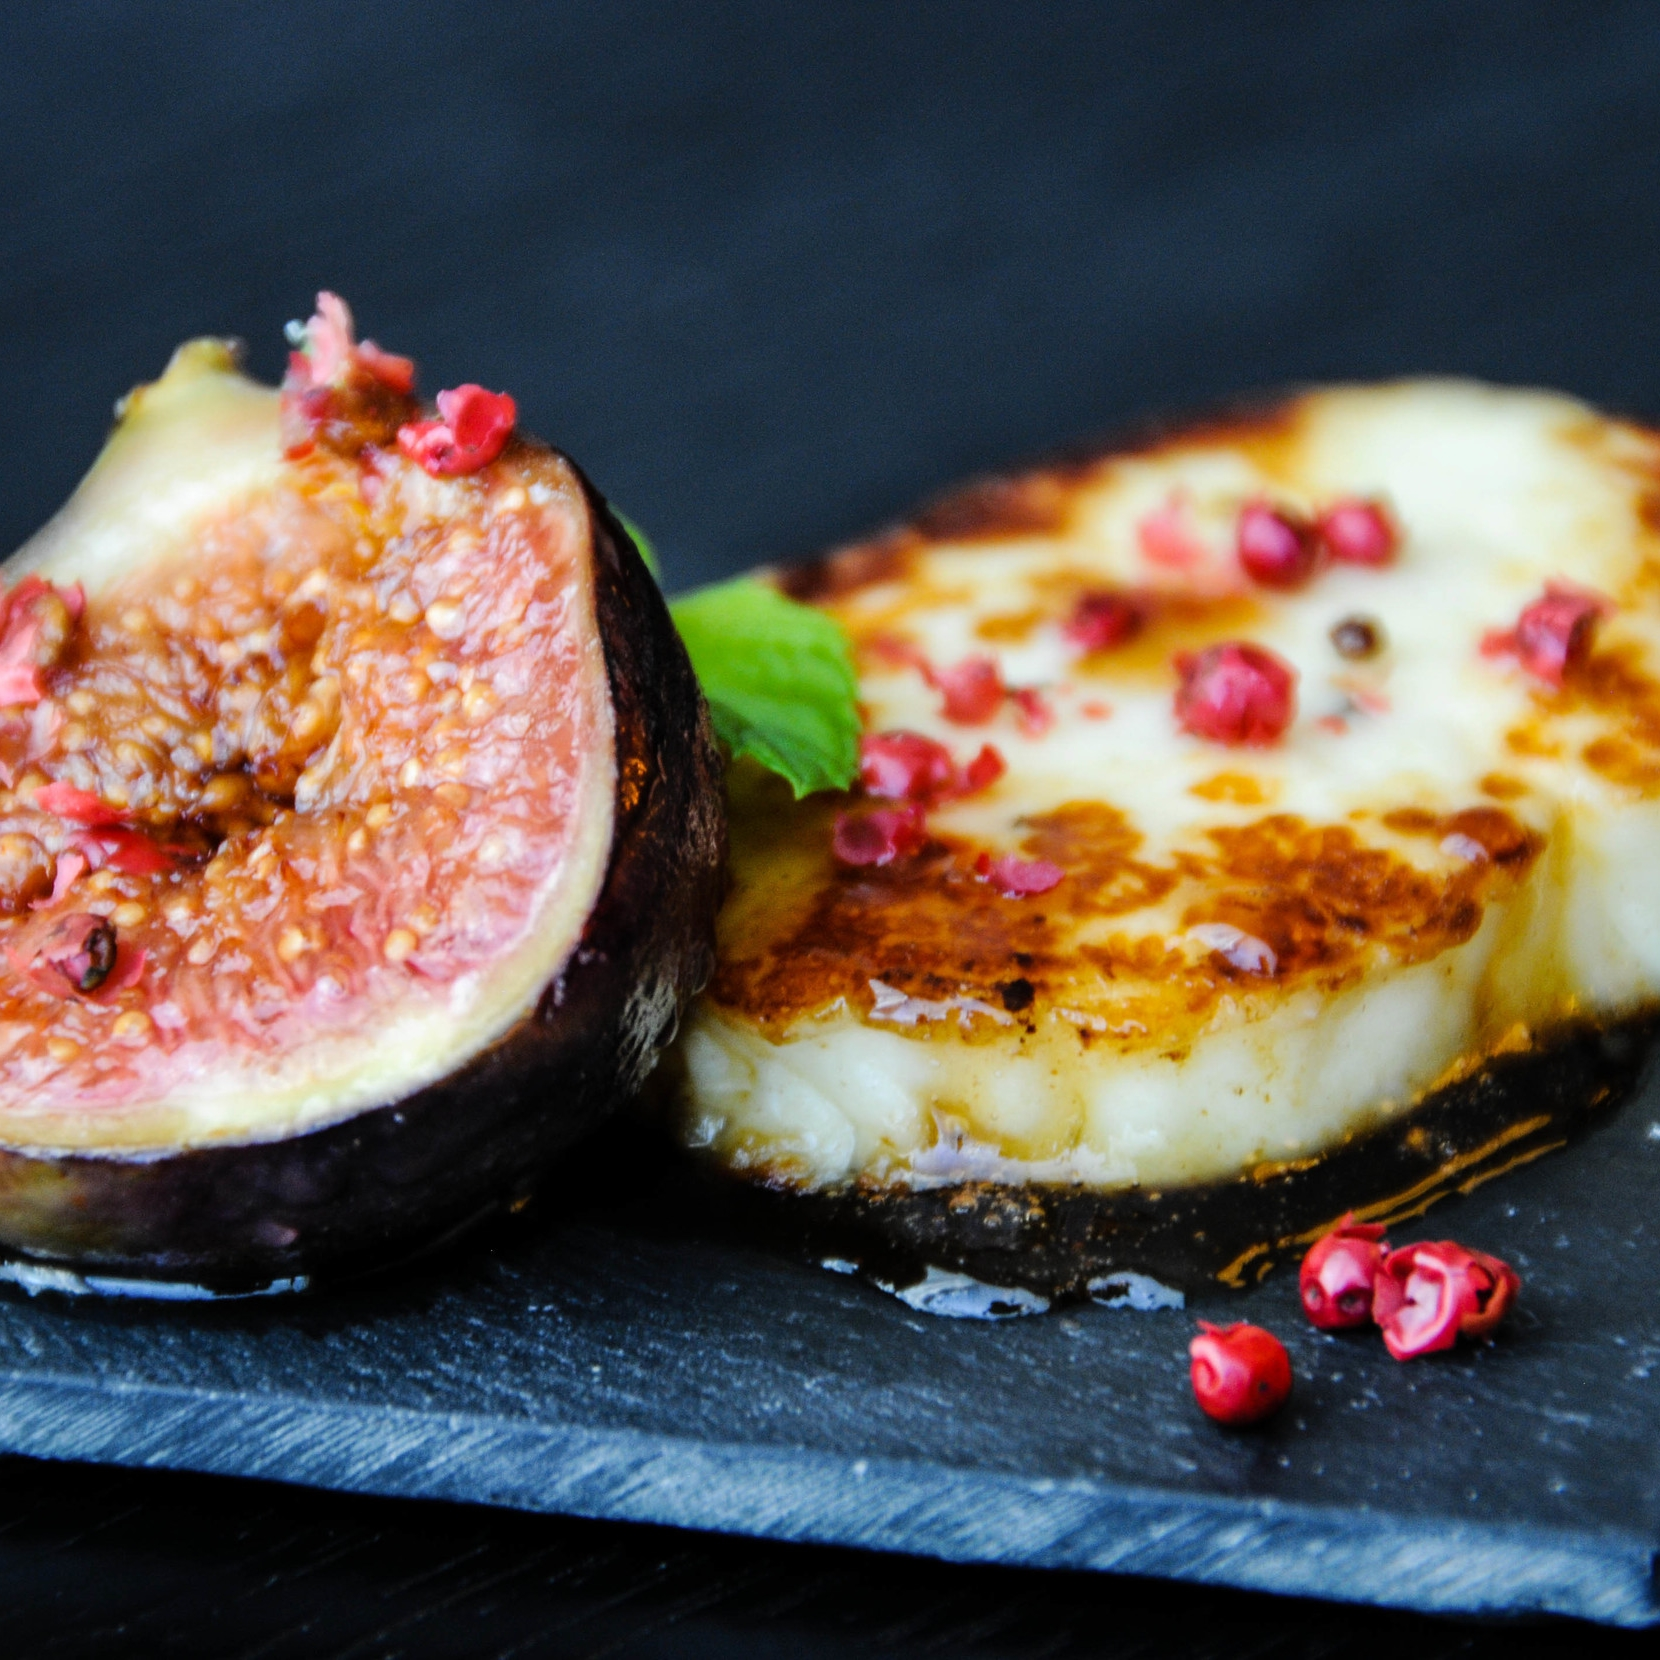 Halloumi with Honey Grilled Figs & Pink Peppercorns